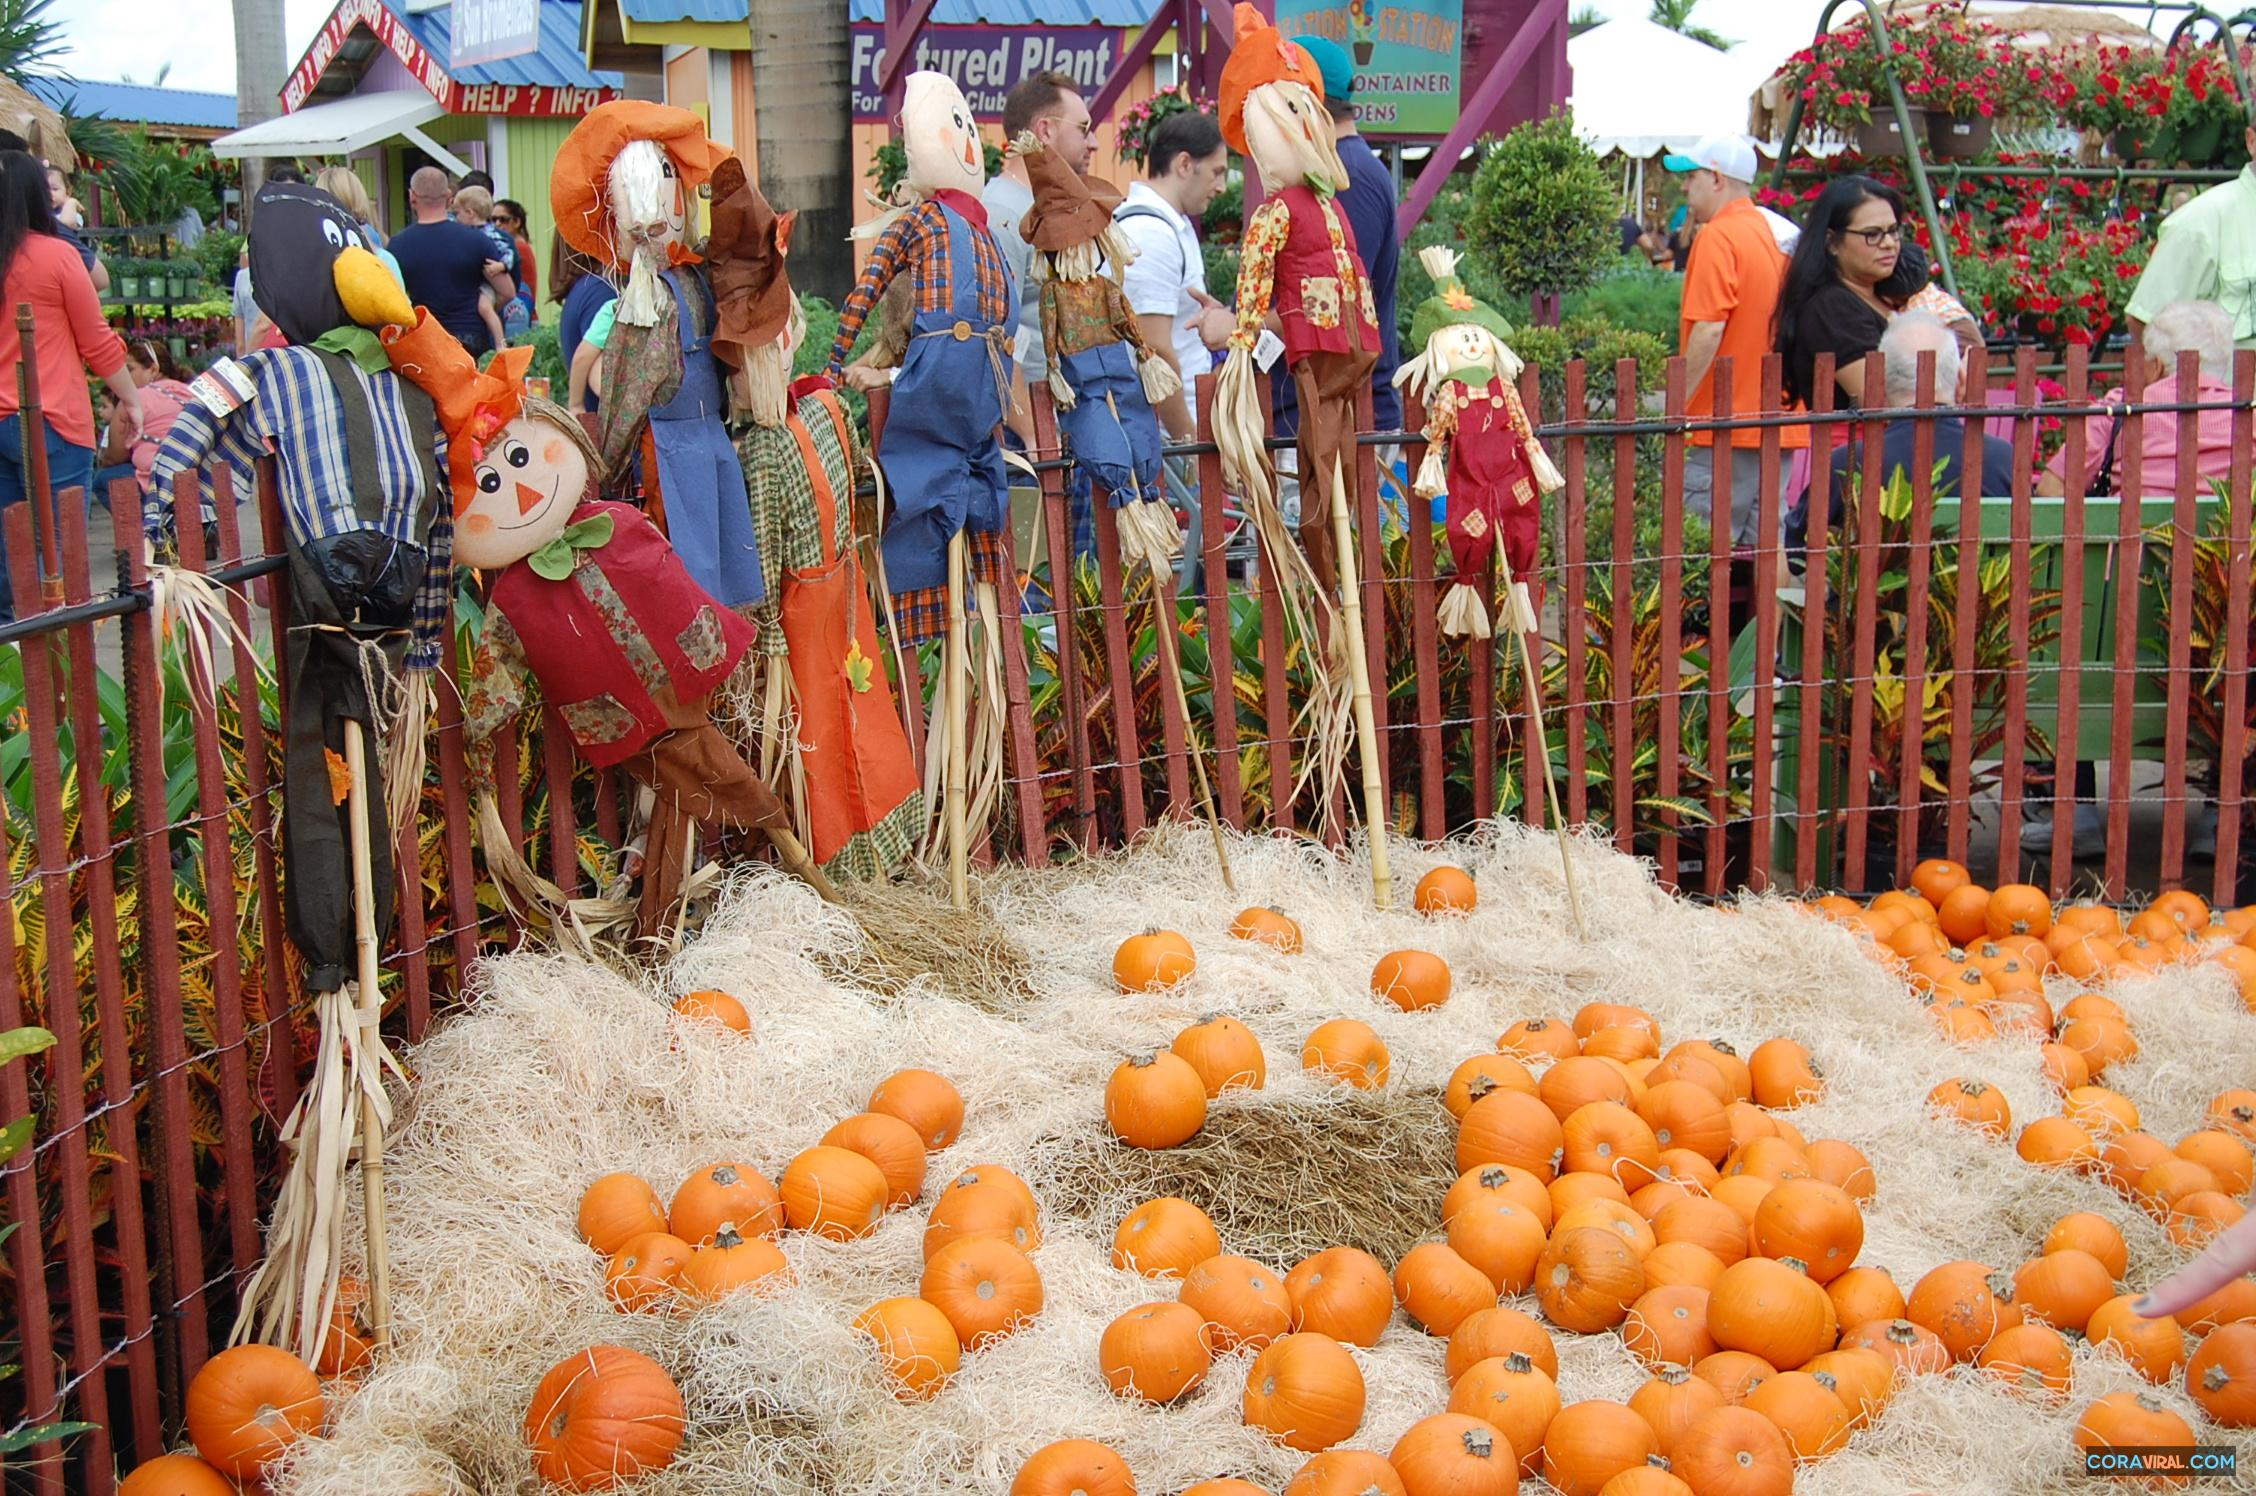 We All Love To Take Our Kids Pumpkin Patch A Million Pictures And Just Be For Day If You Live In Broward Area Flamingo Road Nursery Is